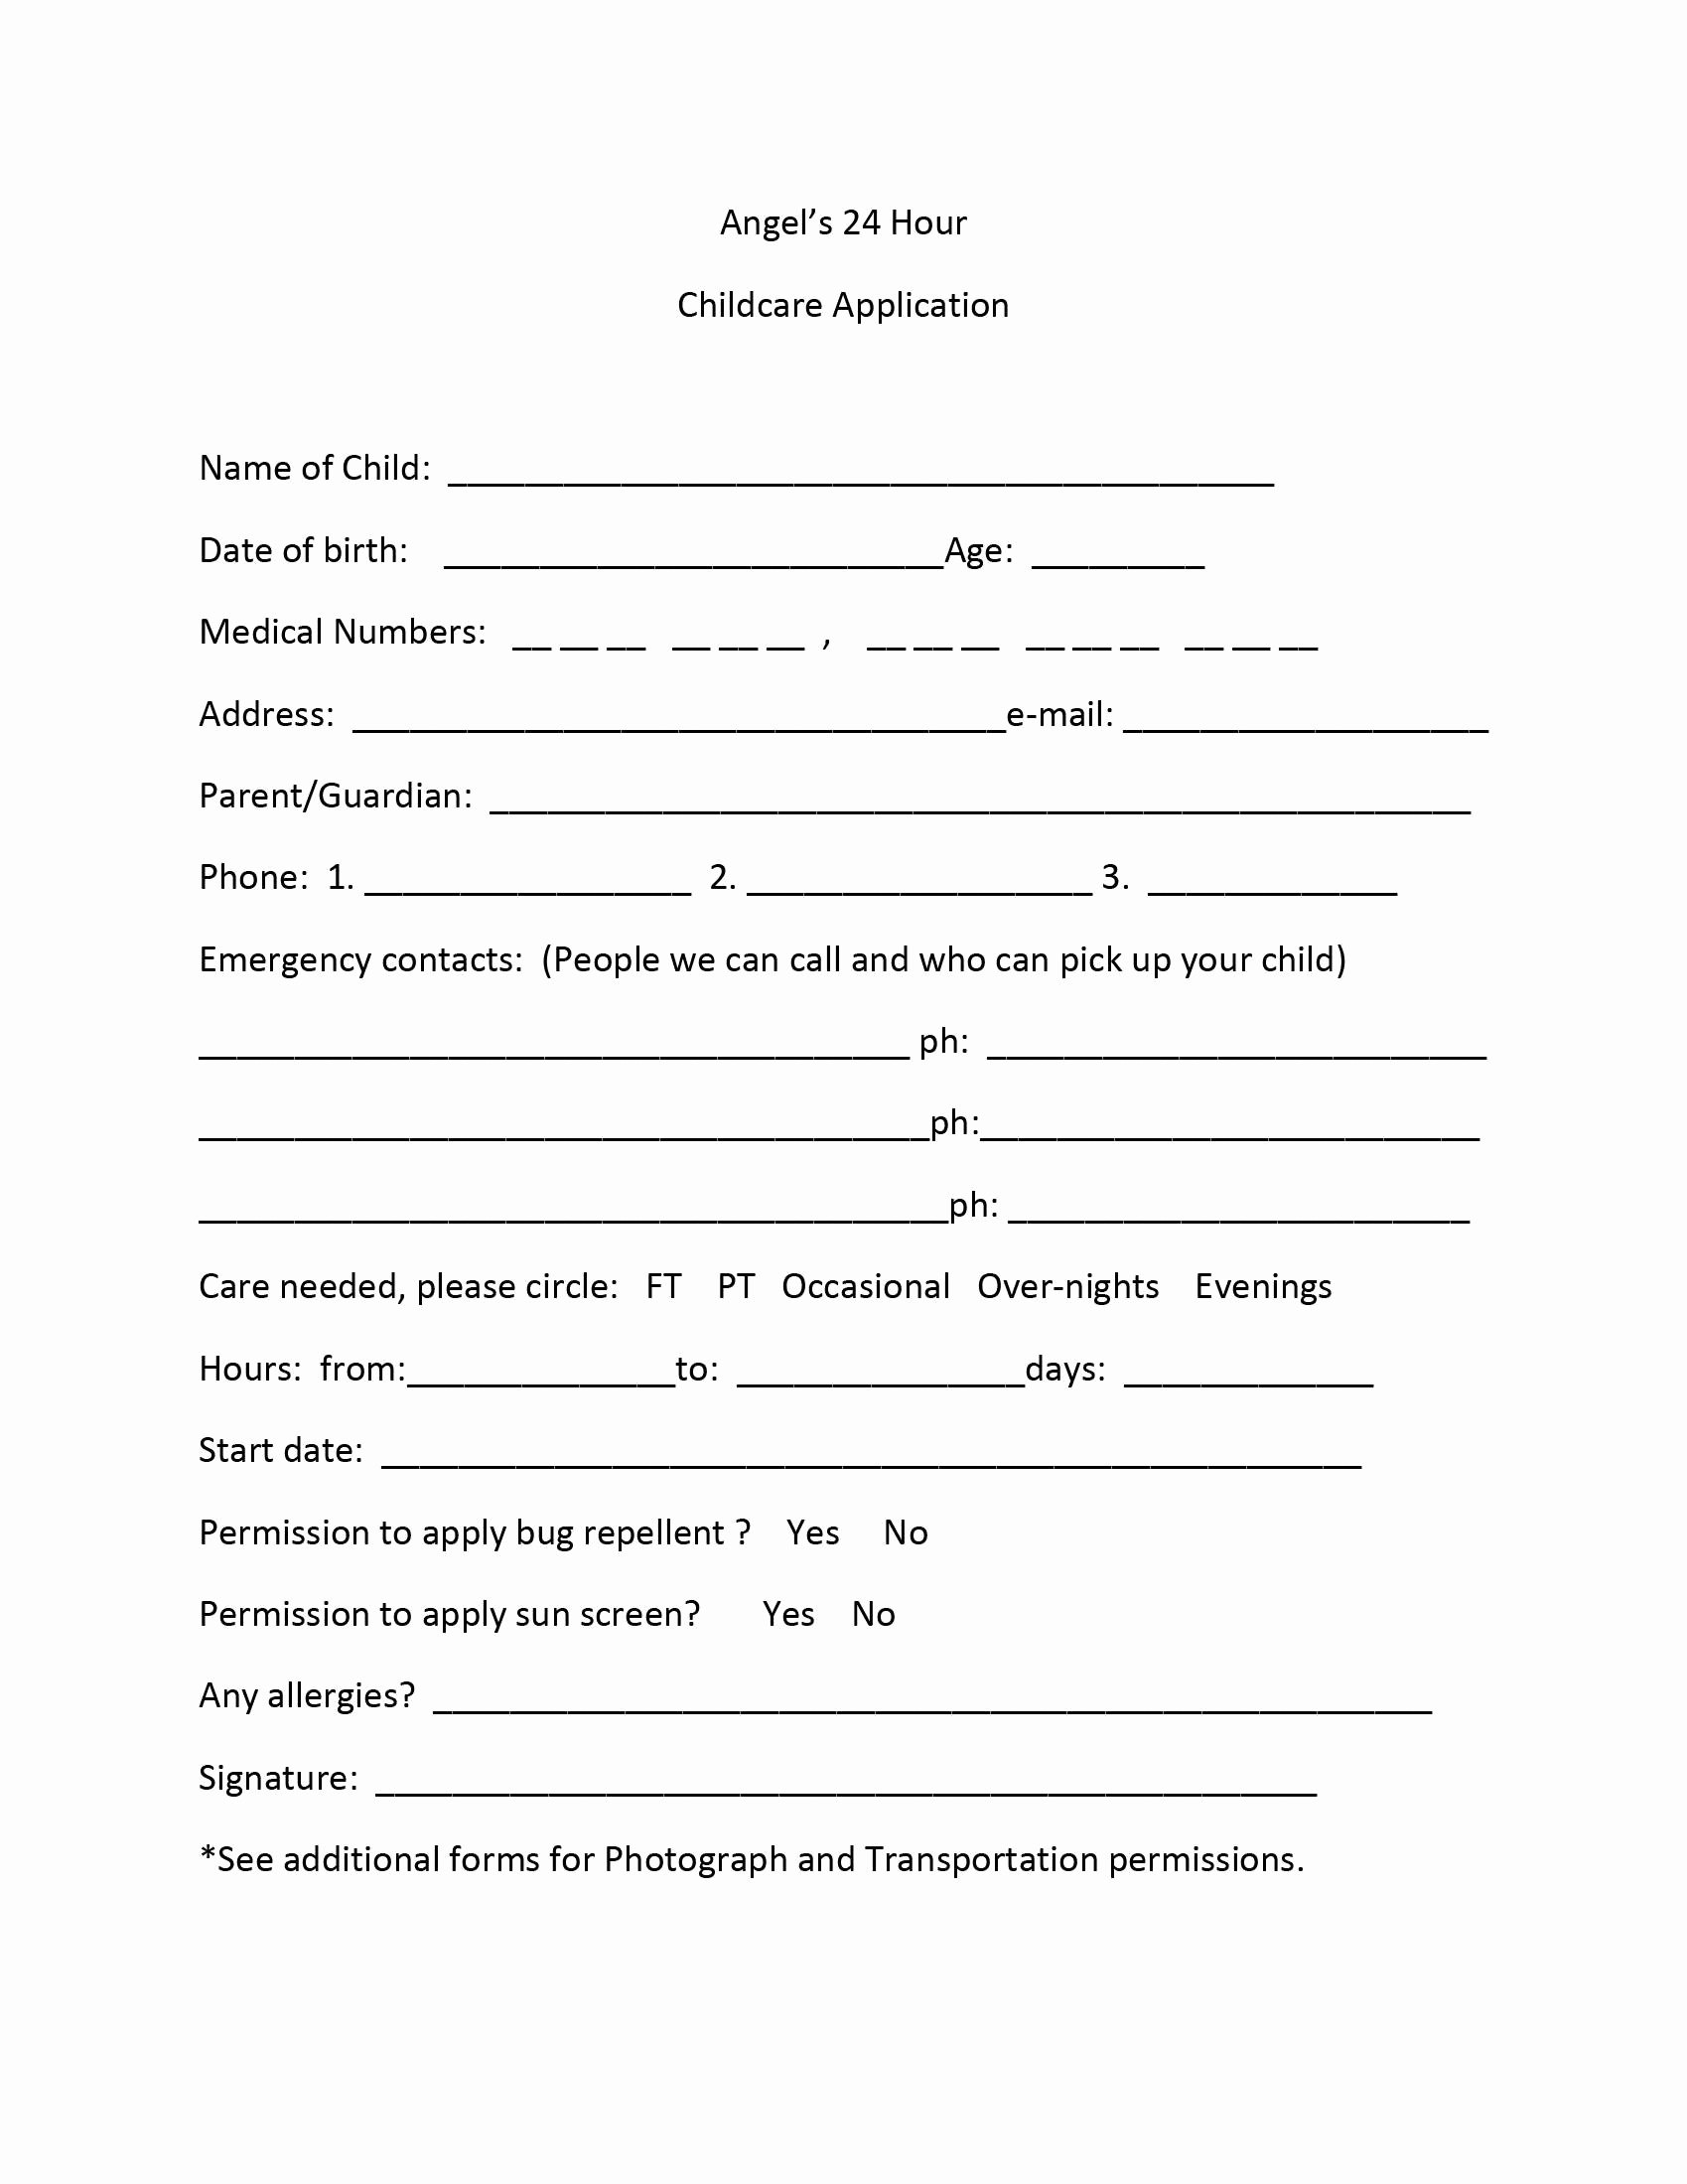 Child Care Application Template Luxury Application form